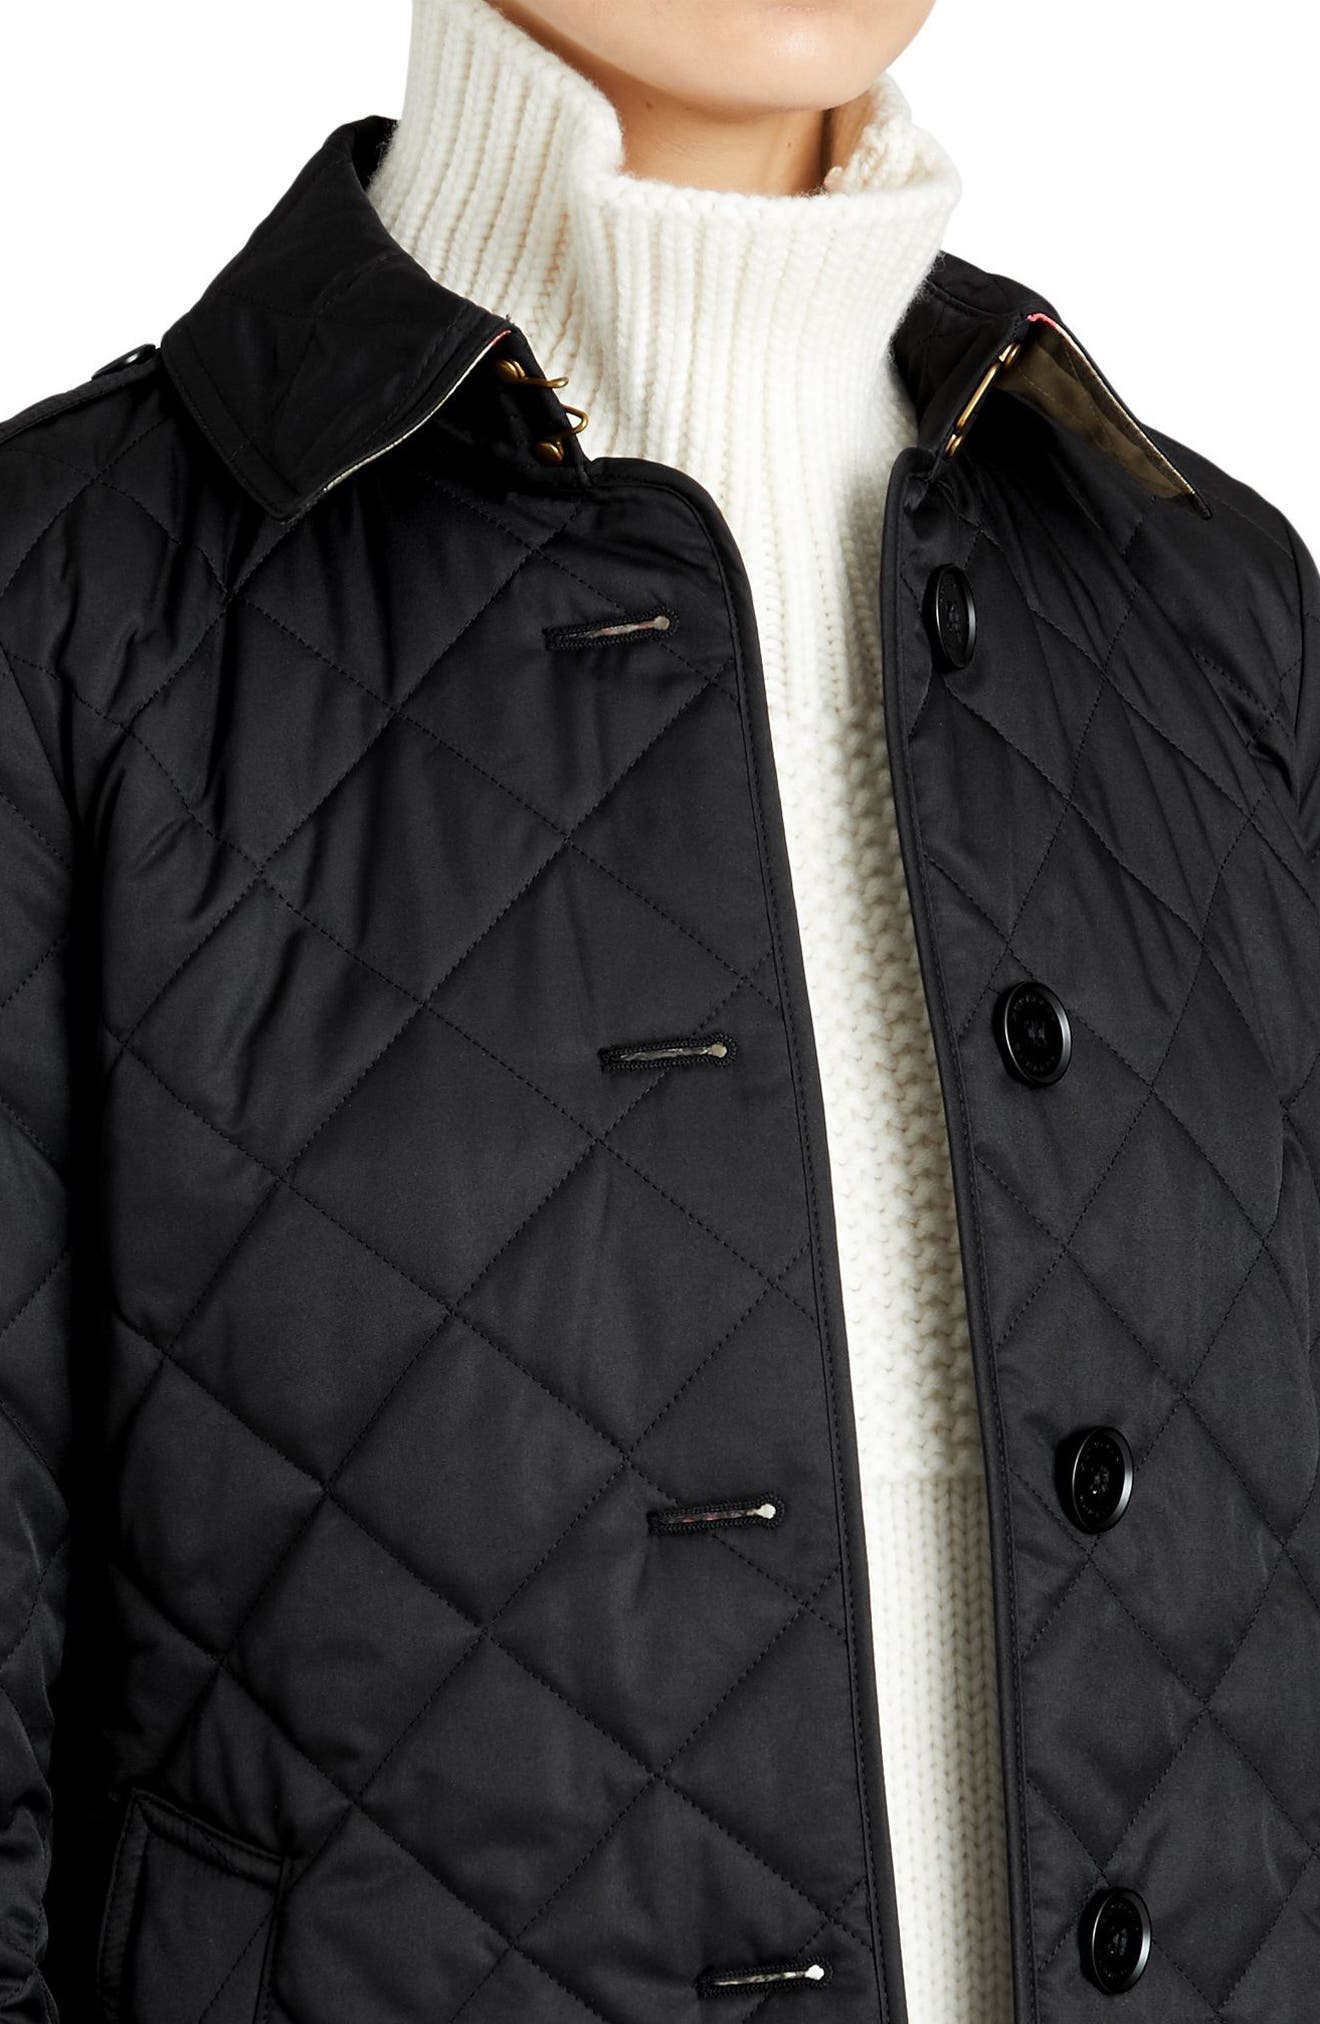 Frankby Quilted Jacket,                             Alternate thumbnail 4, color,                             001